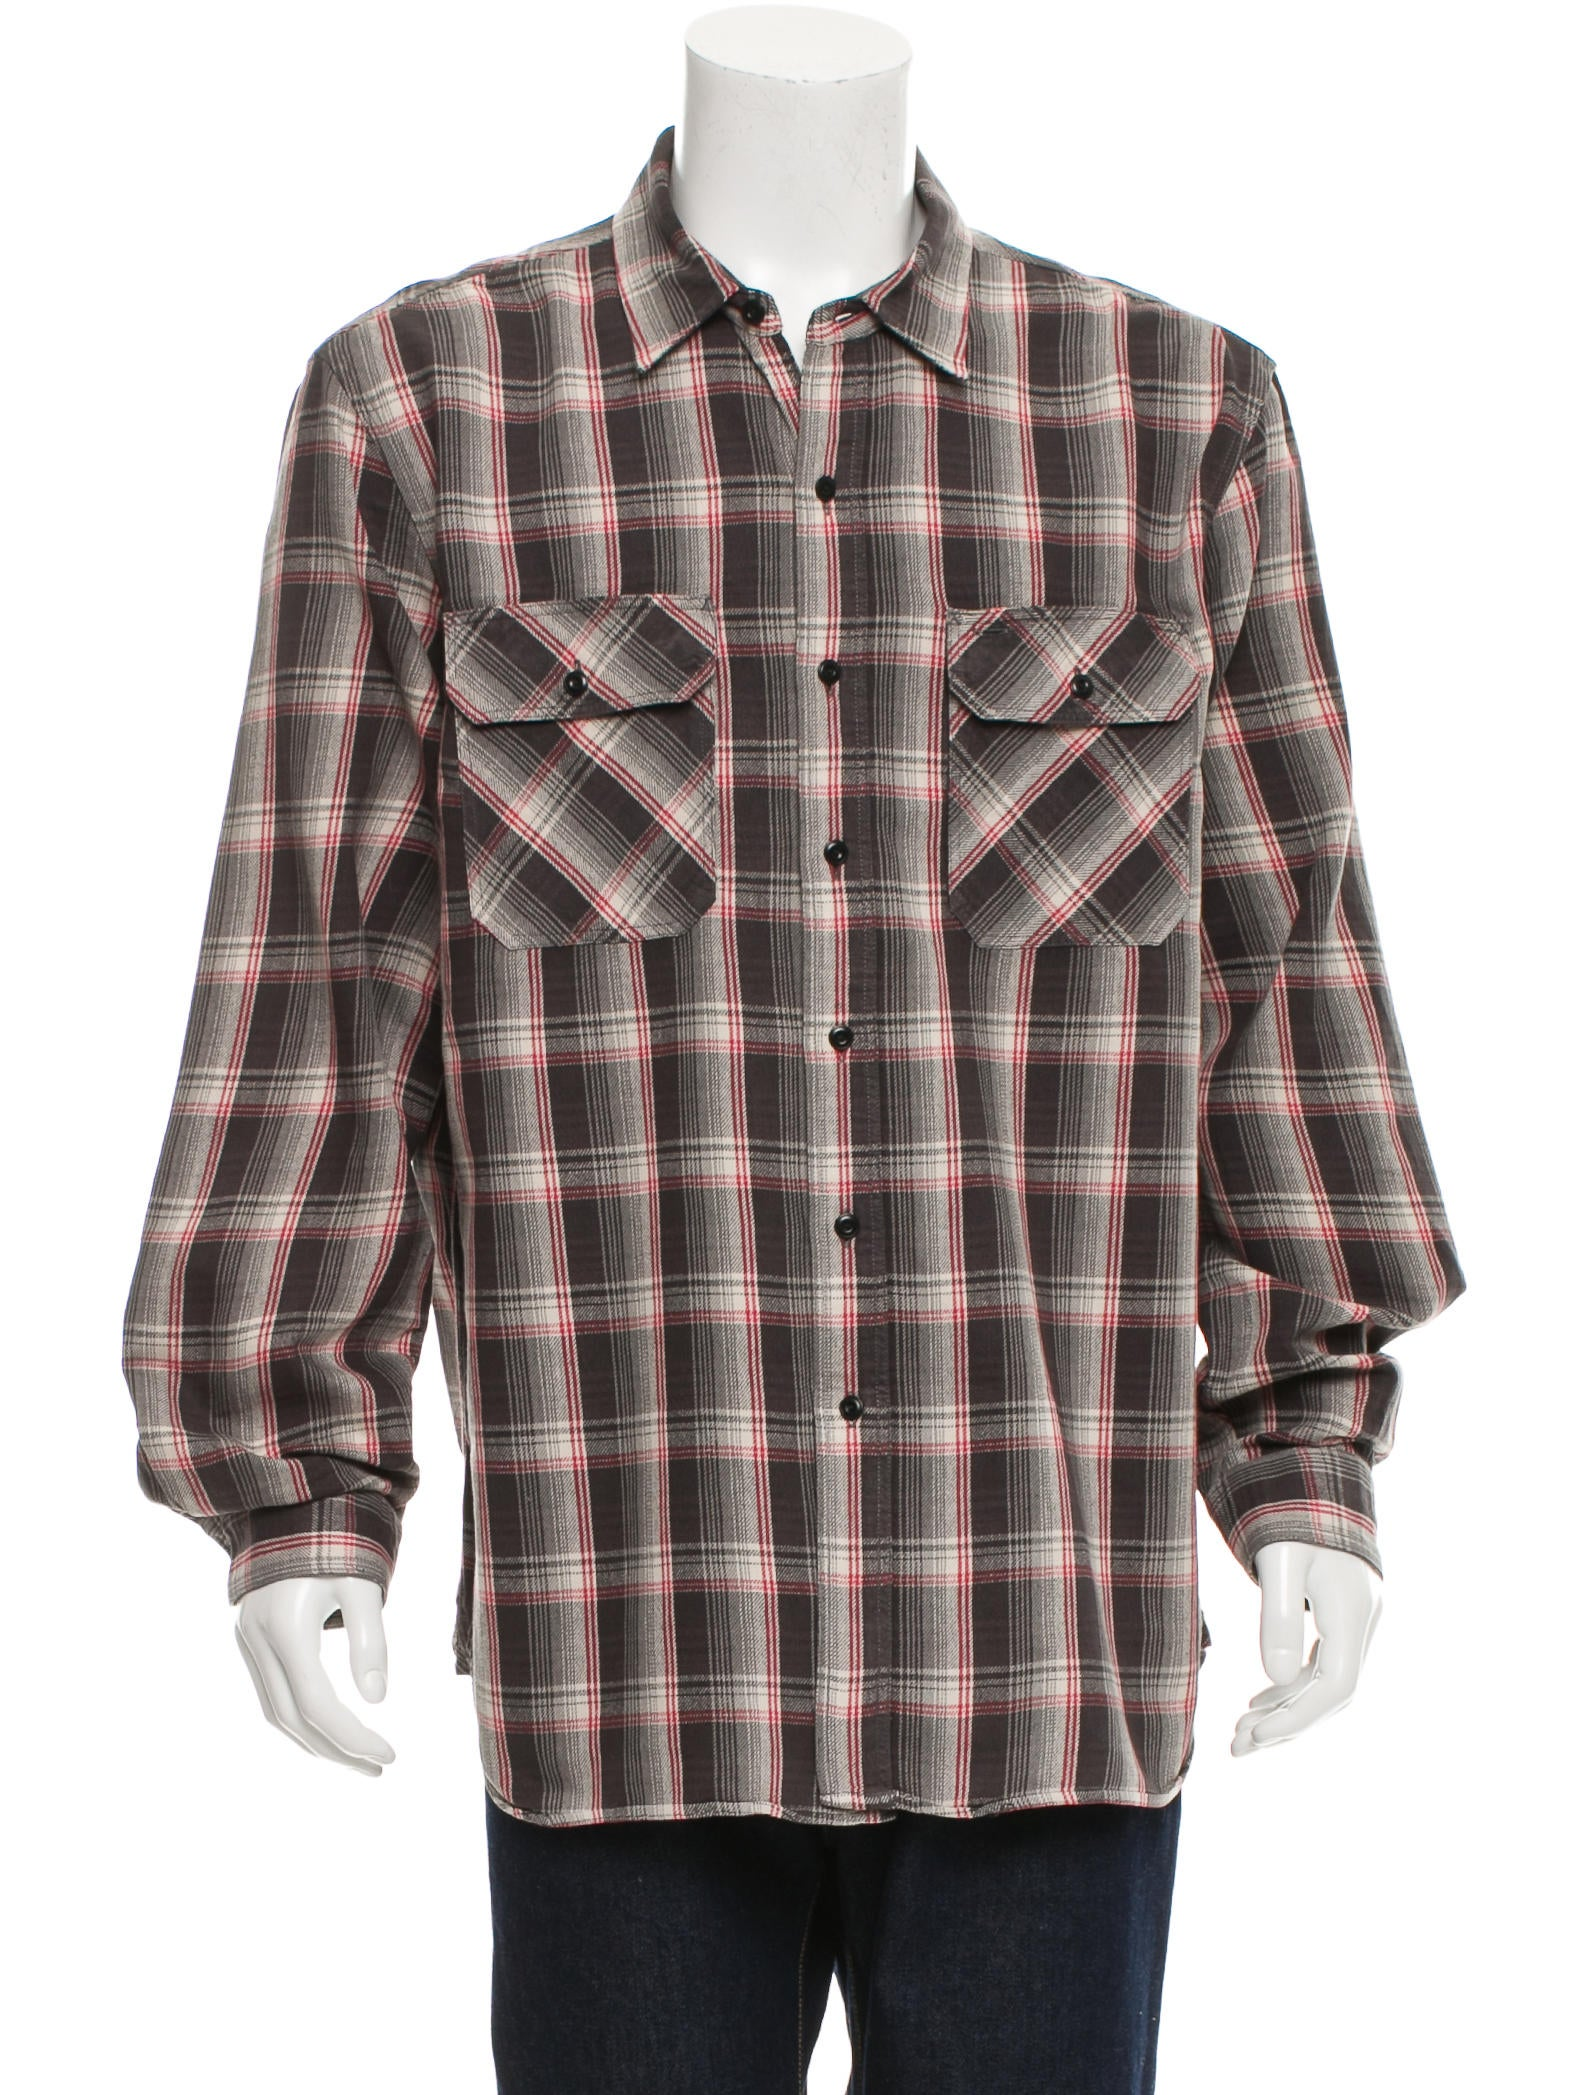 Rrl co plaid button up shirt mens shirts wrrll20319 for Red and white plaid shirt mens